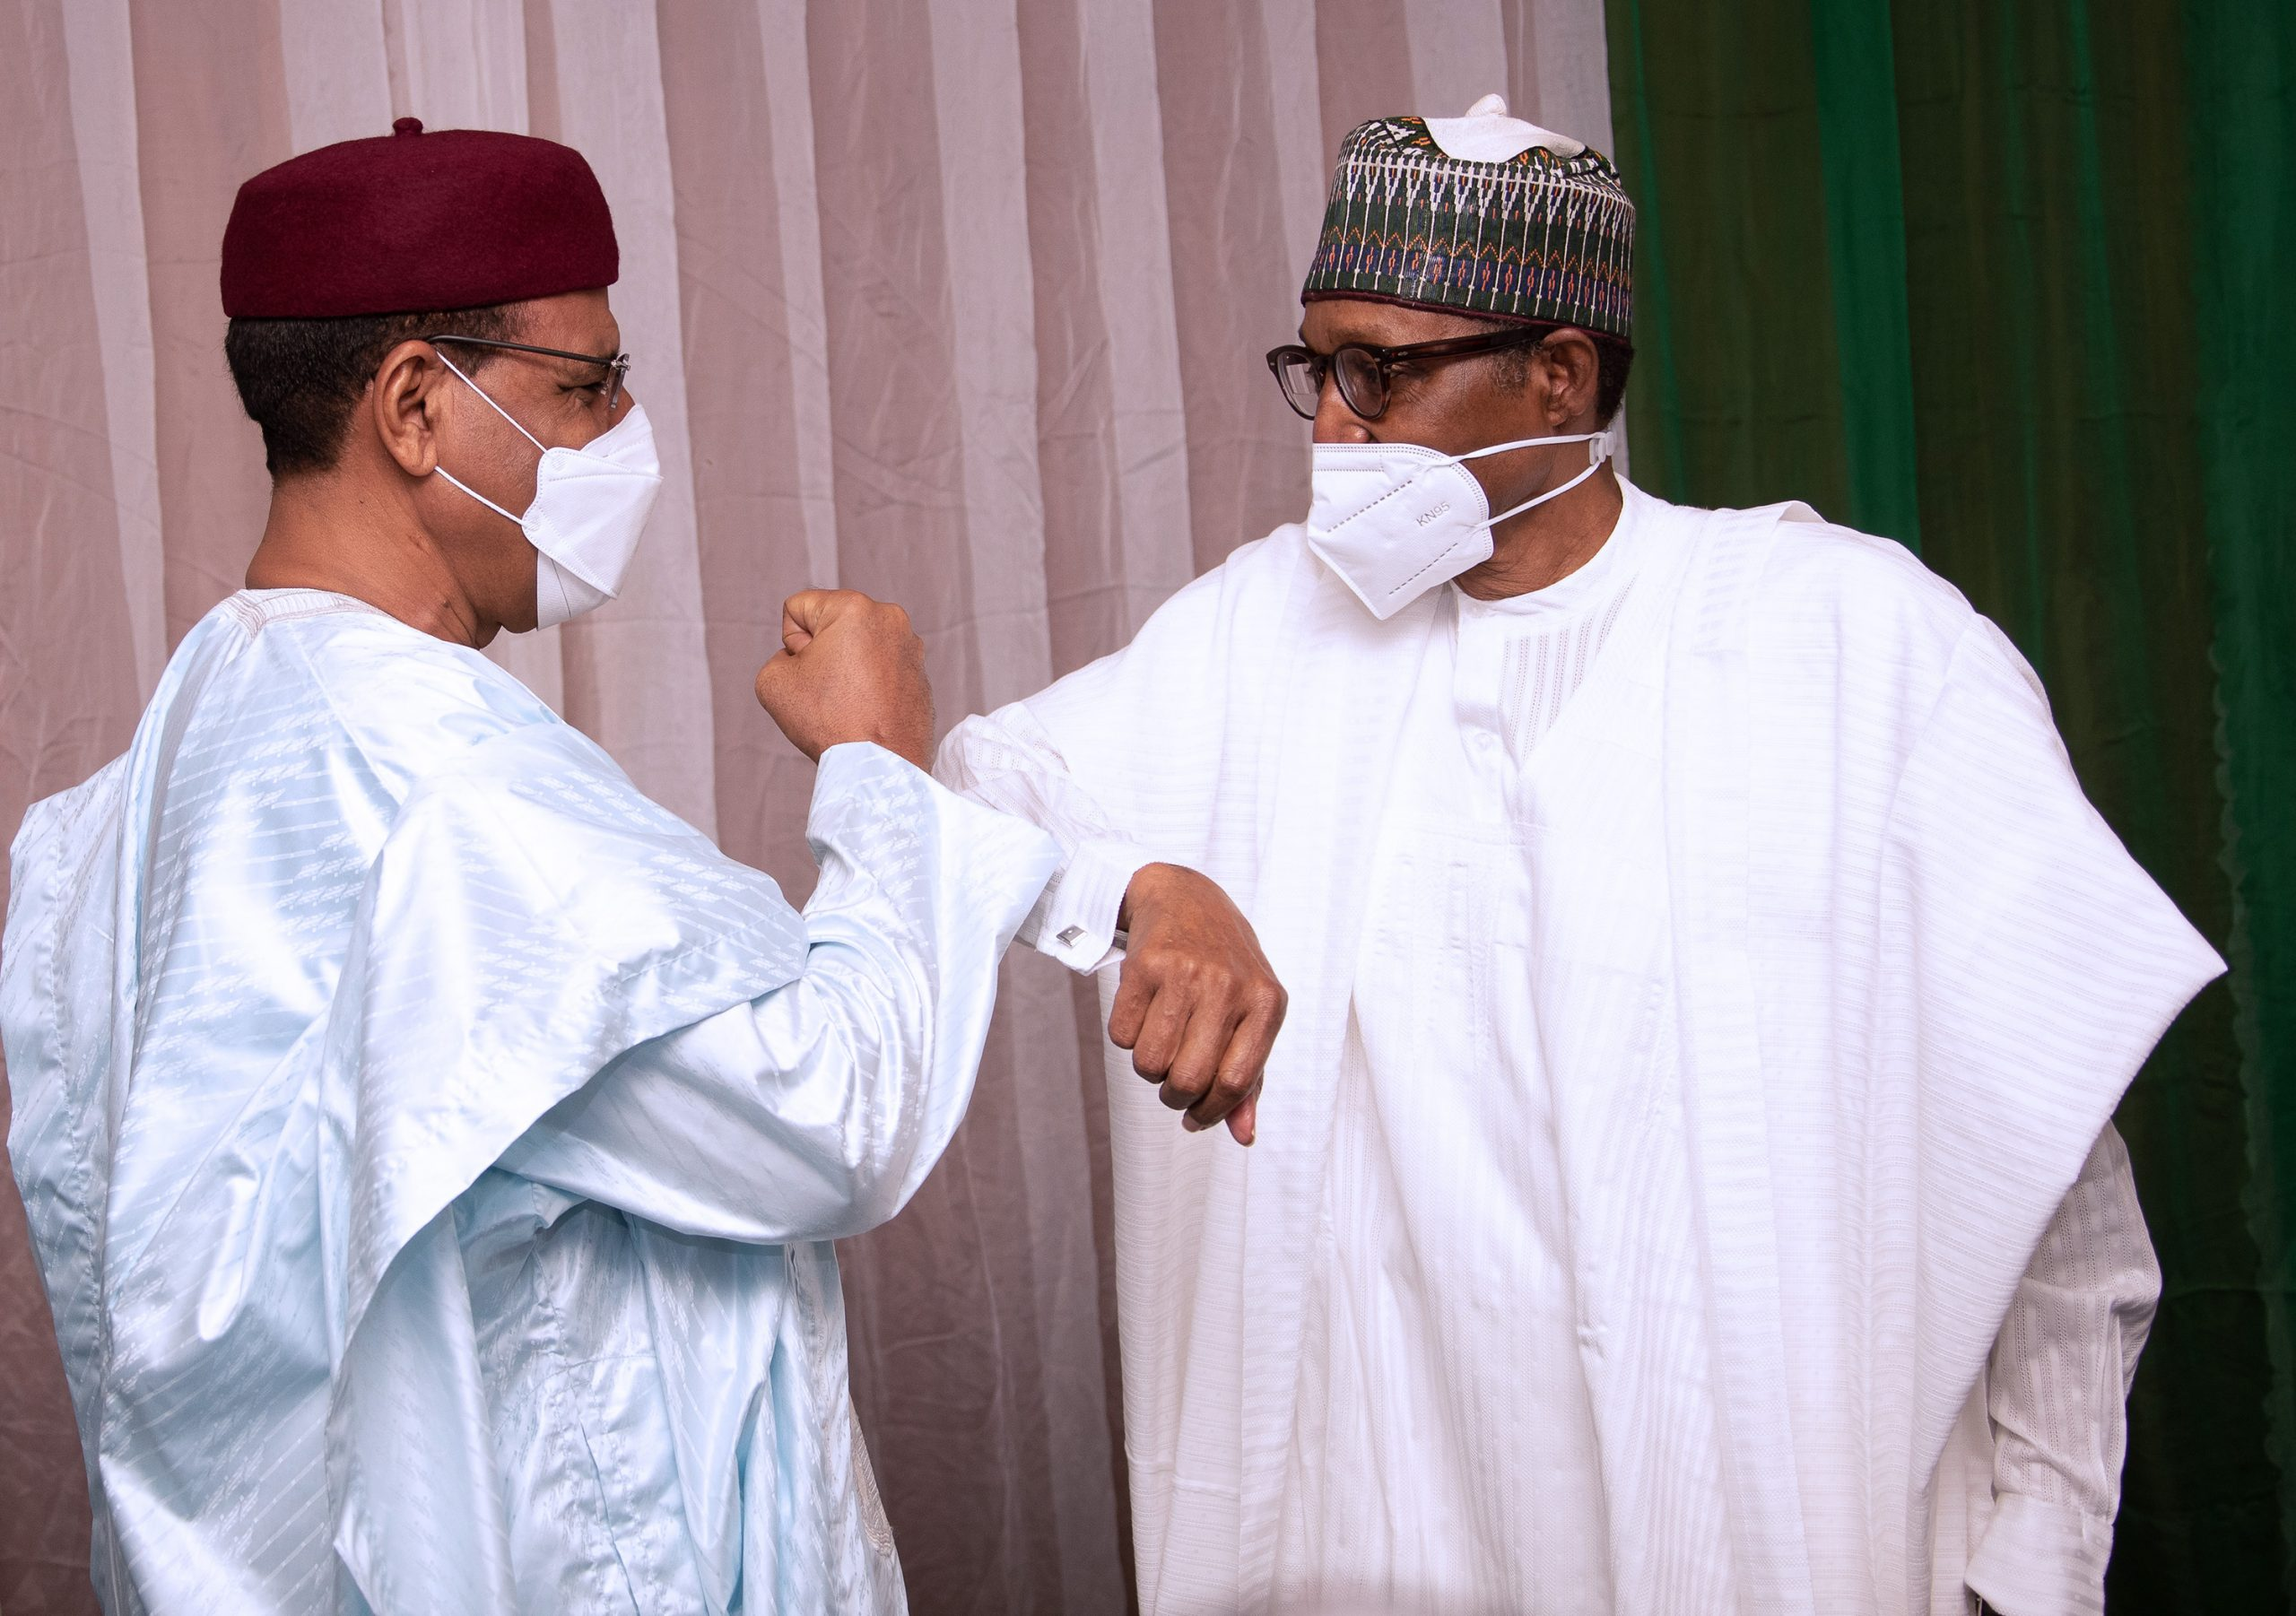 President Muhammadu Buhari receives the President of Niger, H.E Mohame Bazoum during the Extraordinary Summit of the Lake Chad Basin Commission held at the Transcorp Hilton Abuja. PHOTO; SUNDAY AGHAEZE. MAY 25TH 2021